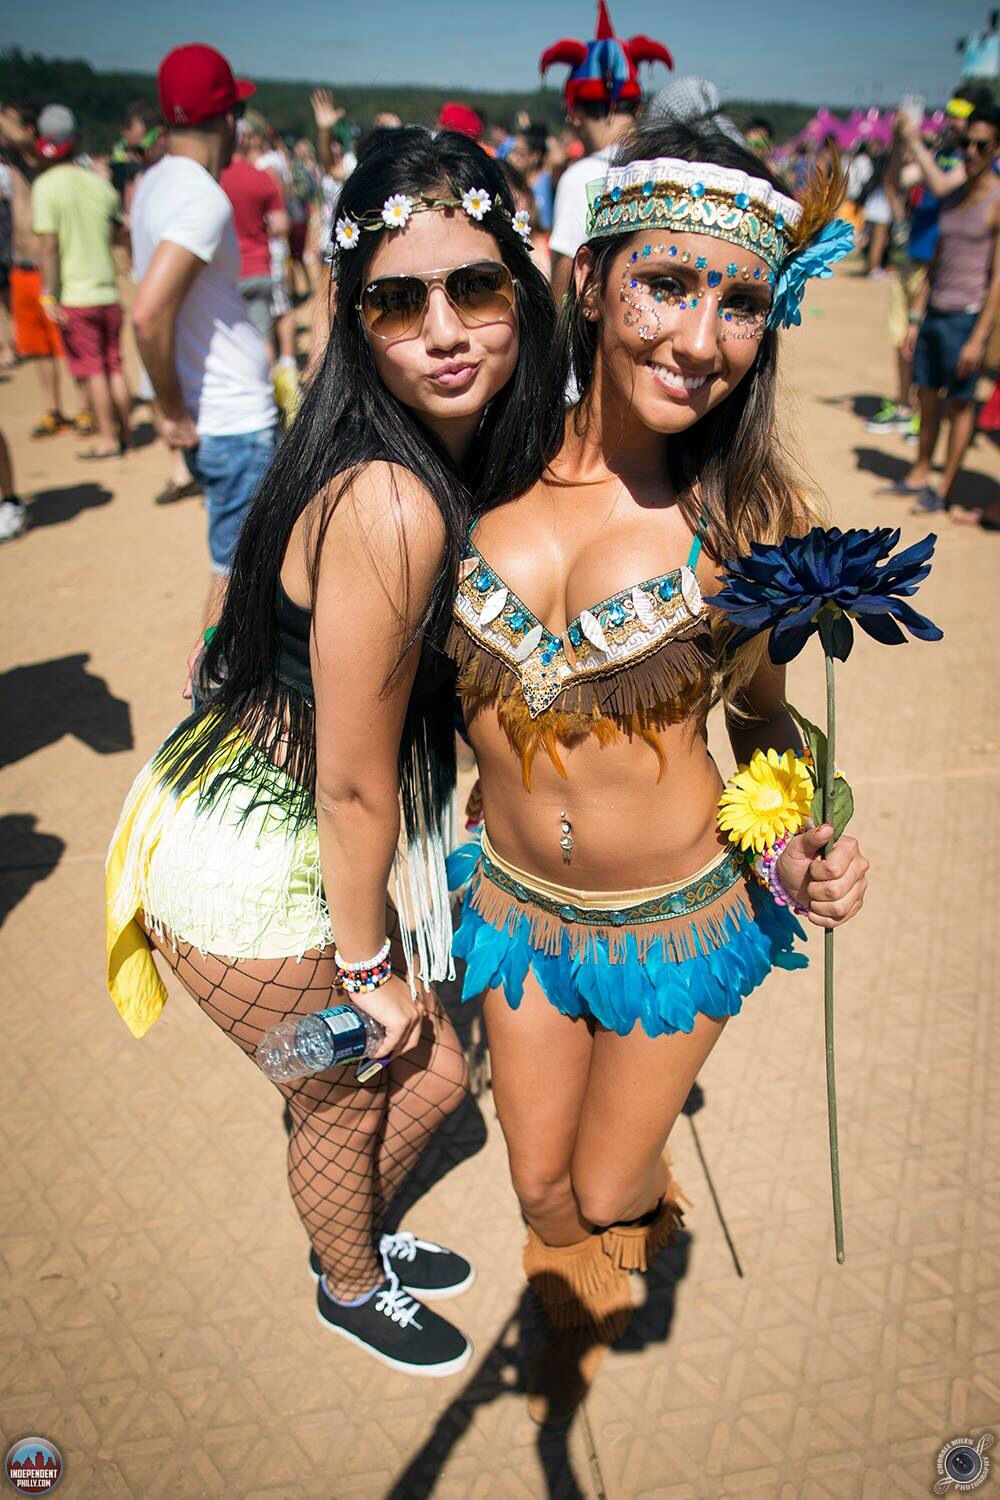 fd3d7b9aa739a8 Red Velvet Voyage EDM   Rave FASHION Inspirations. Feathers and Indian  inspired raver girl bikini costume  choralemilesphotography  TomorrowWorld